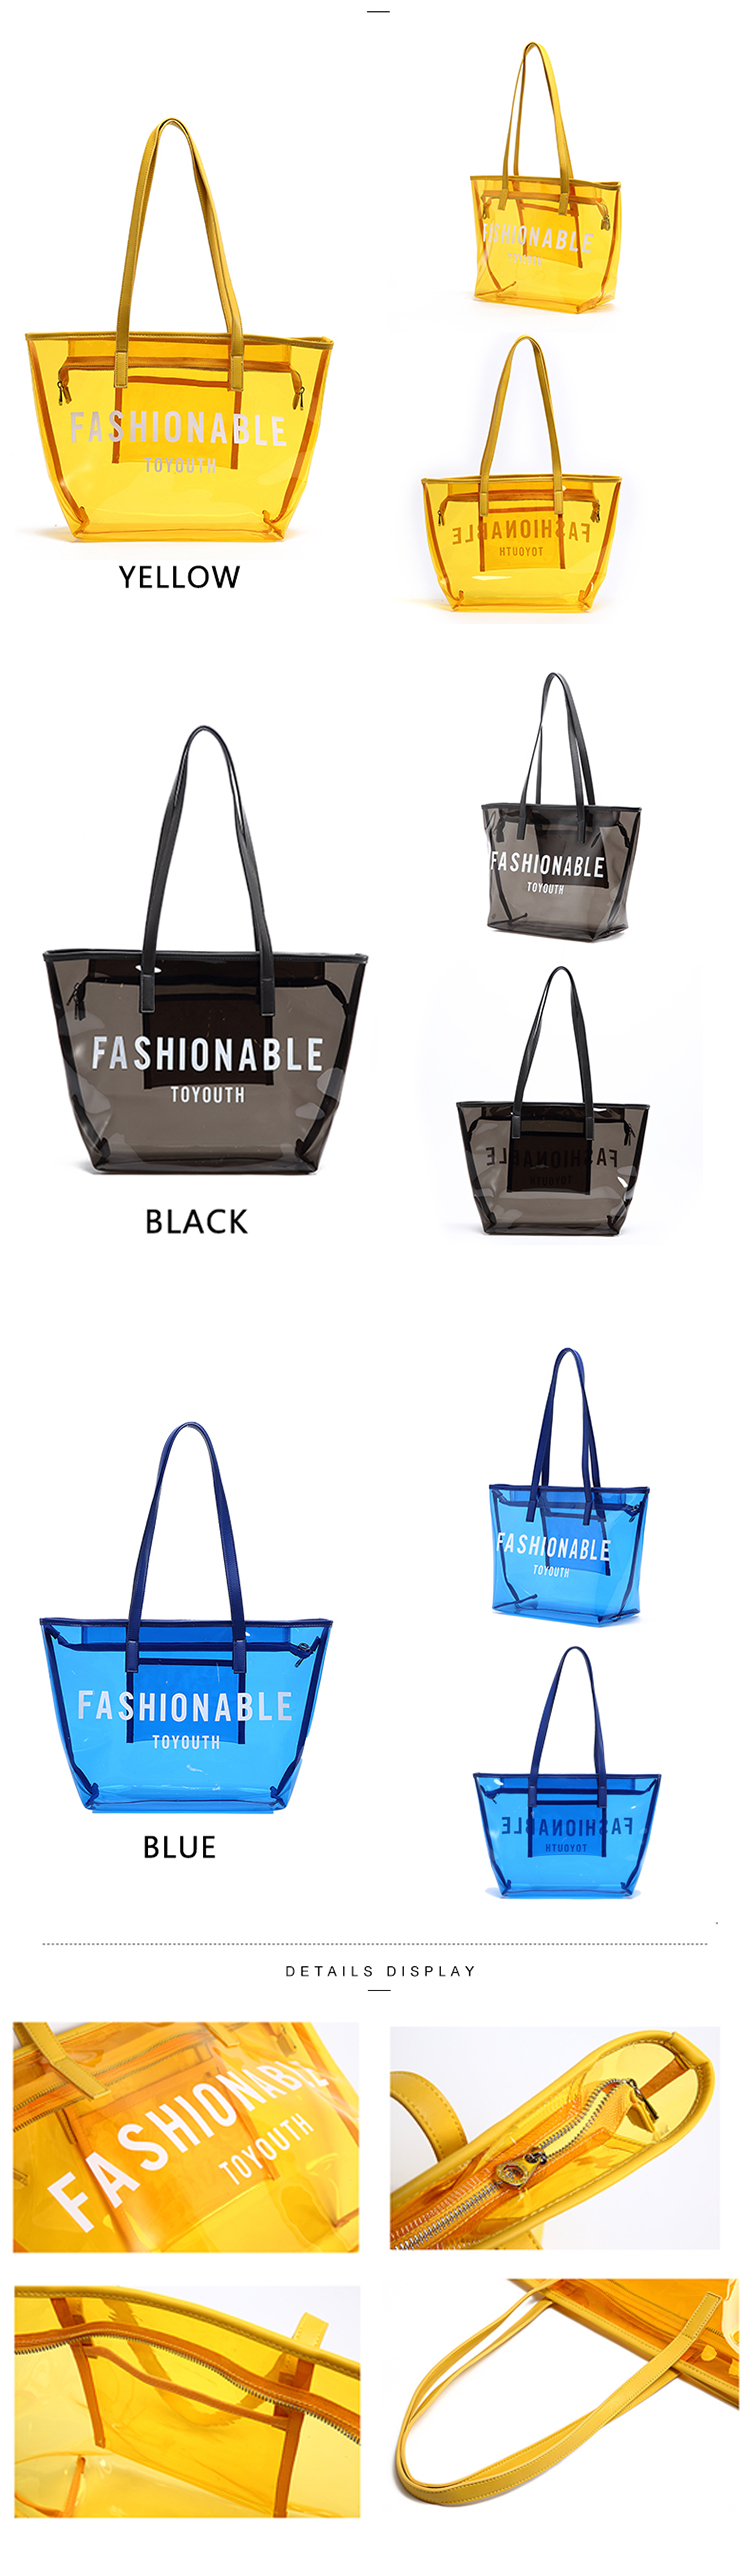 clear-tote-bags1_03